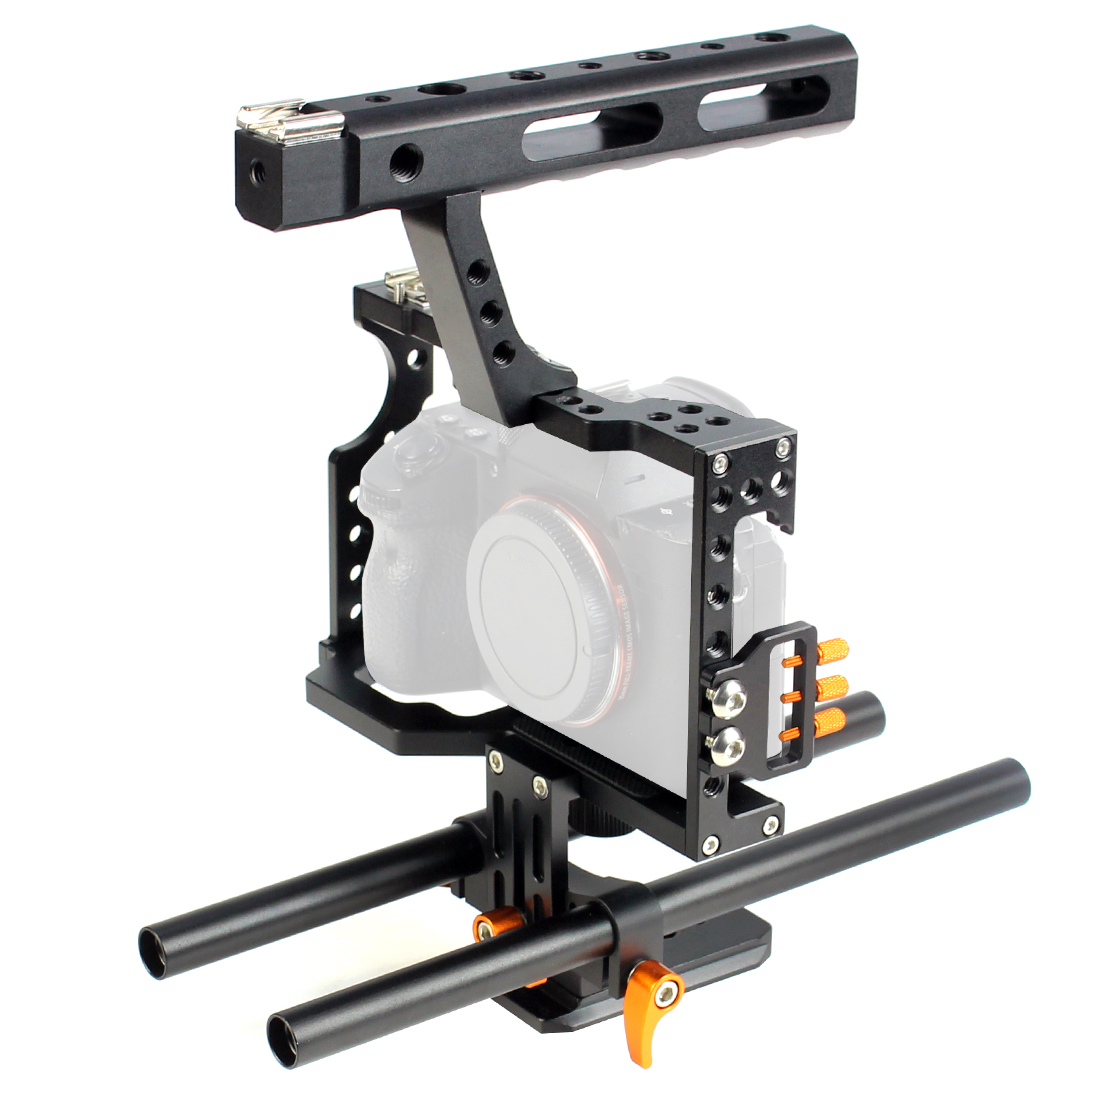 Aluminum Alloy Camera Cage Video Film Stabilizer Rig + Top Handle Grip + Rod for Sony A7II A7R A7SII A6000 A6500 Panasonic GH4